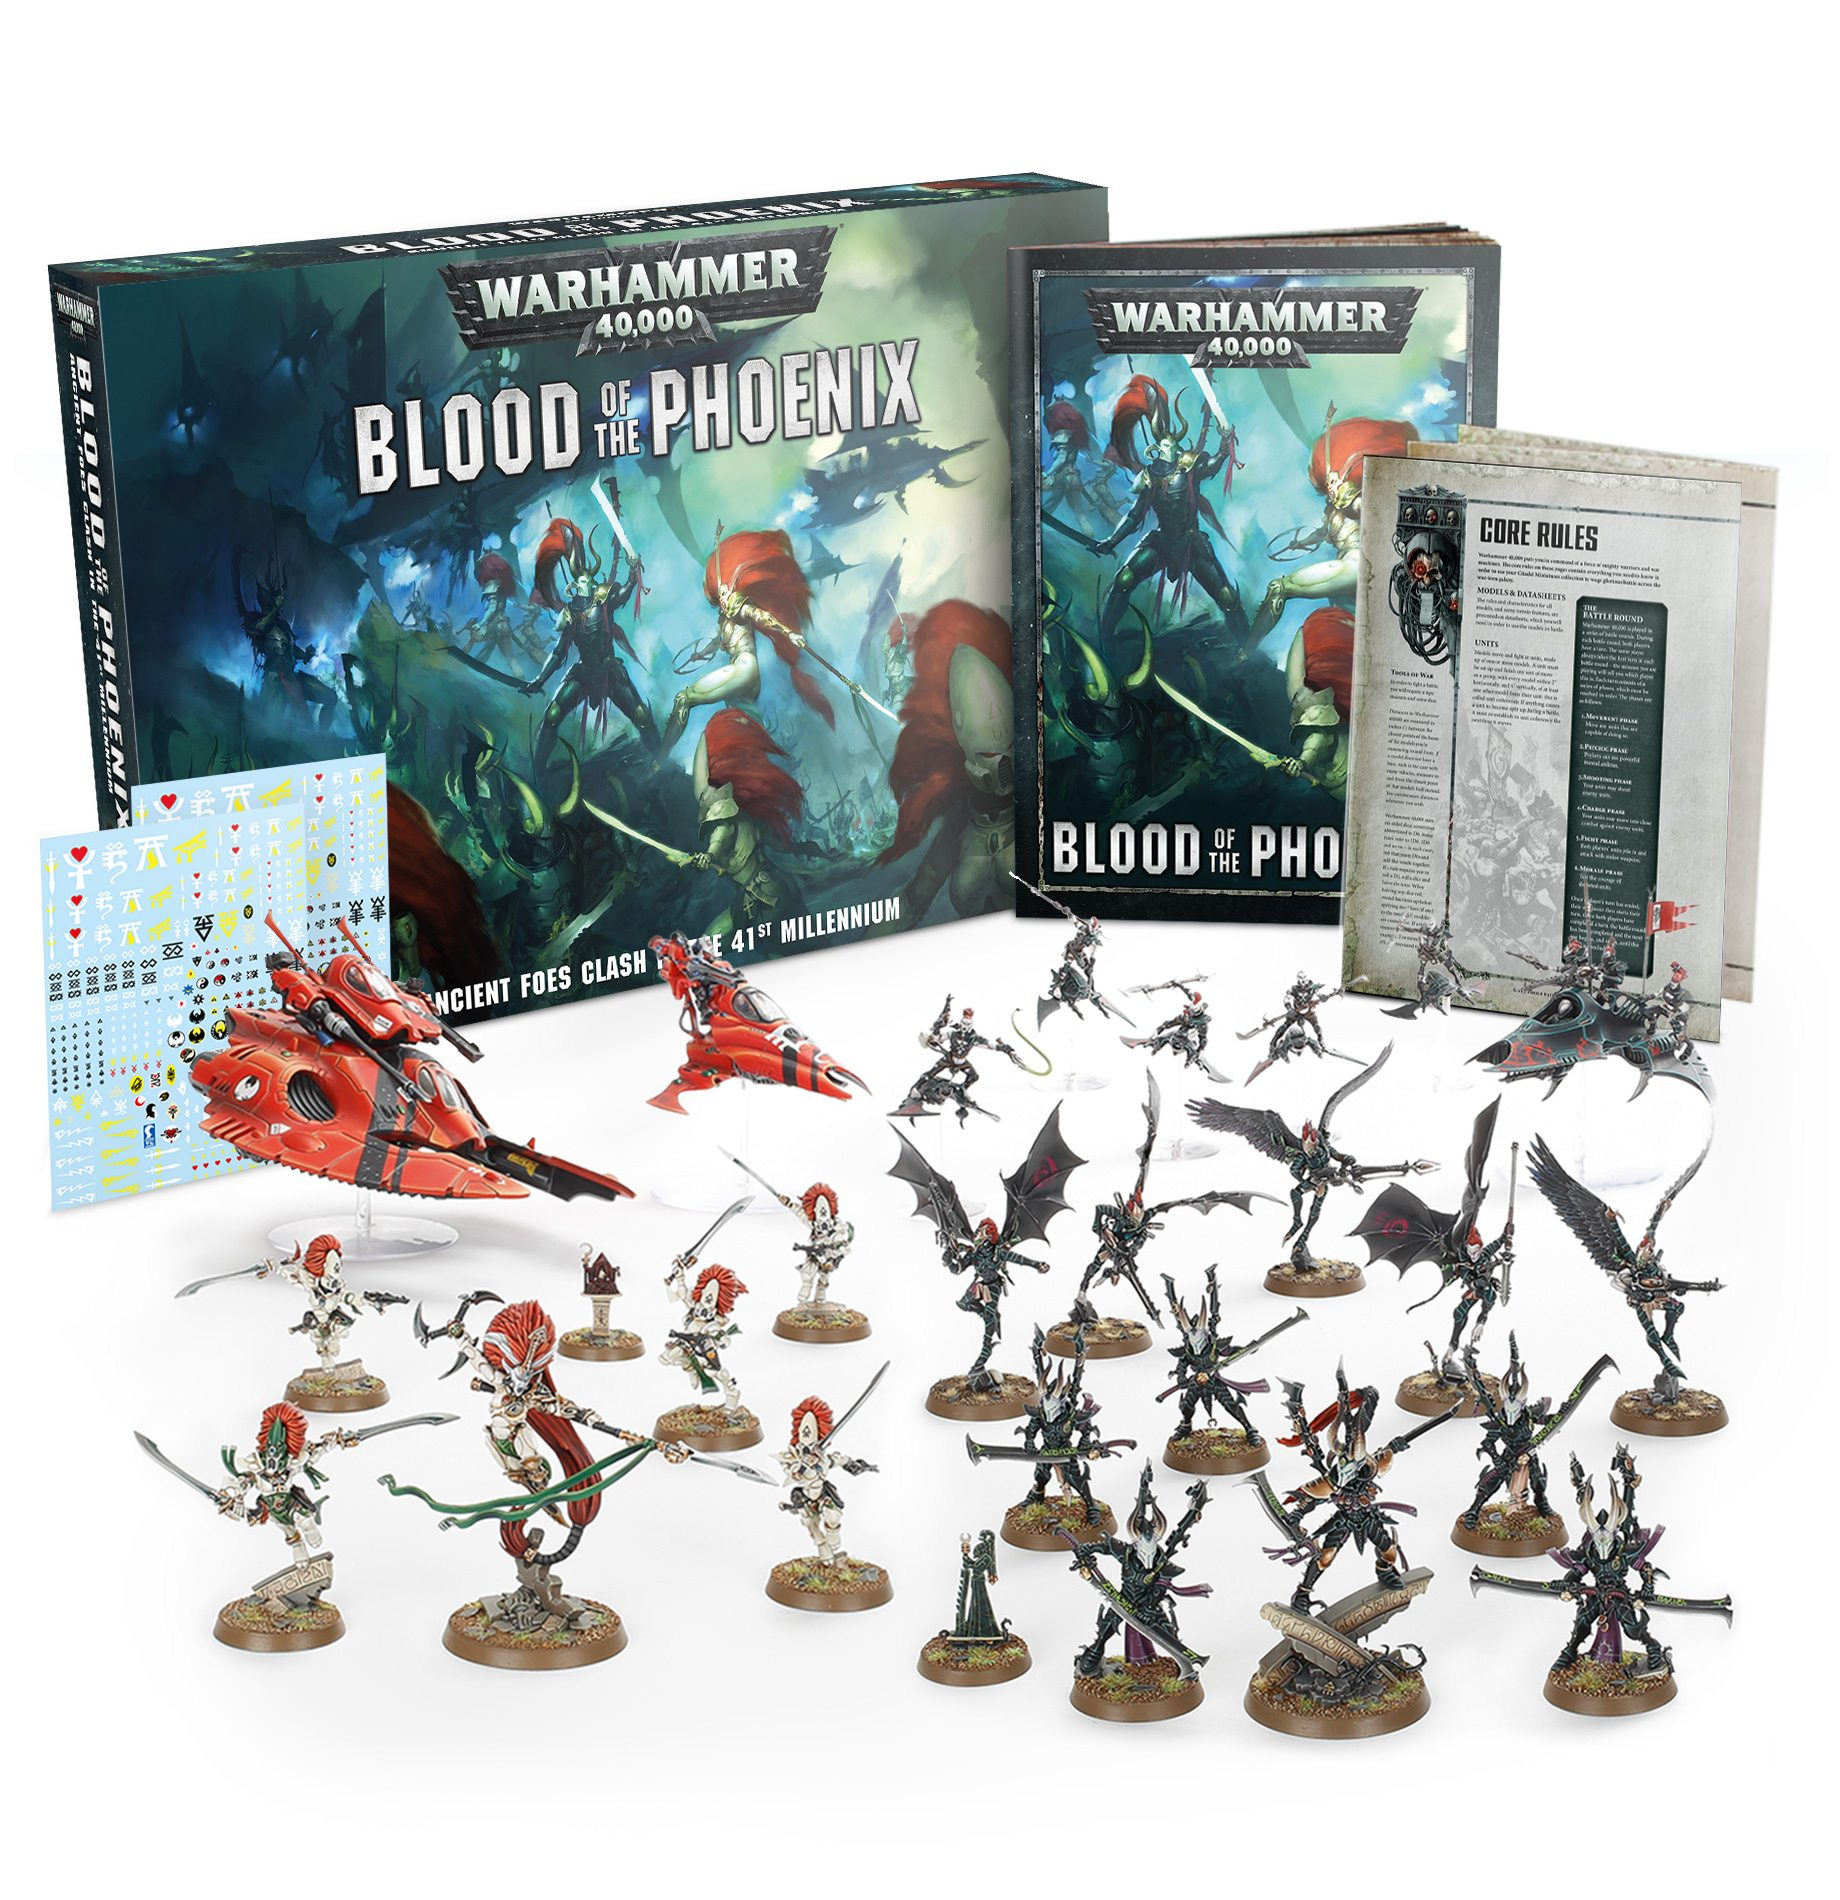 Warhammer 40,000: Blood of the Phoenix